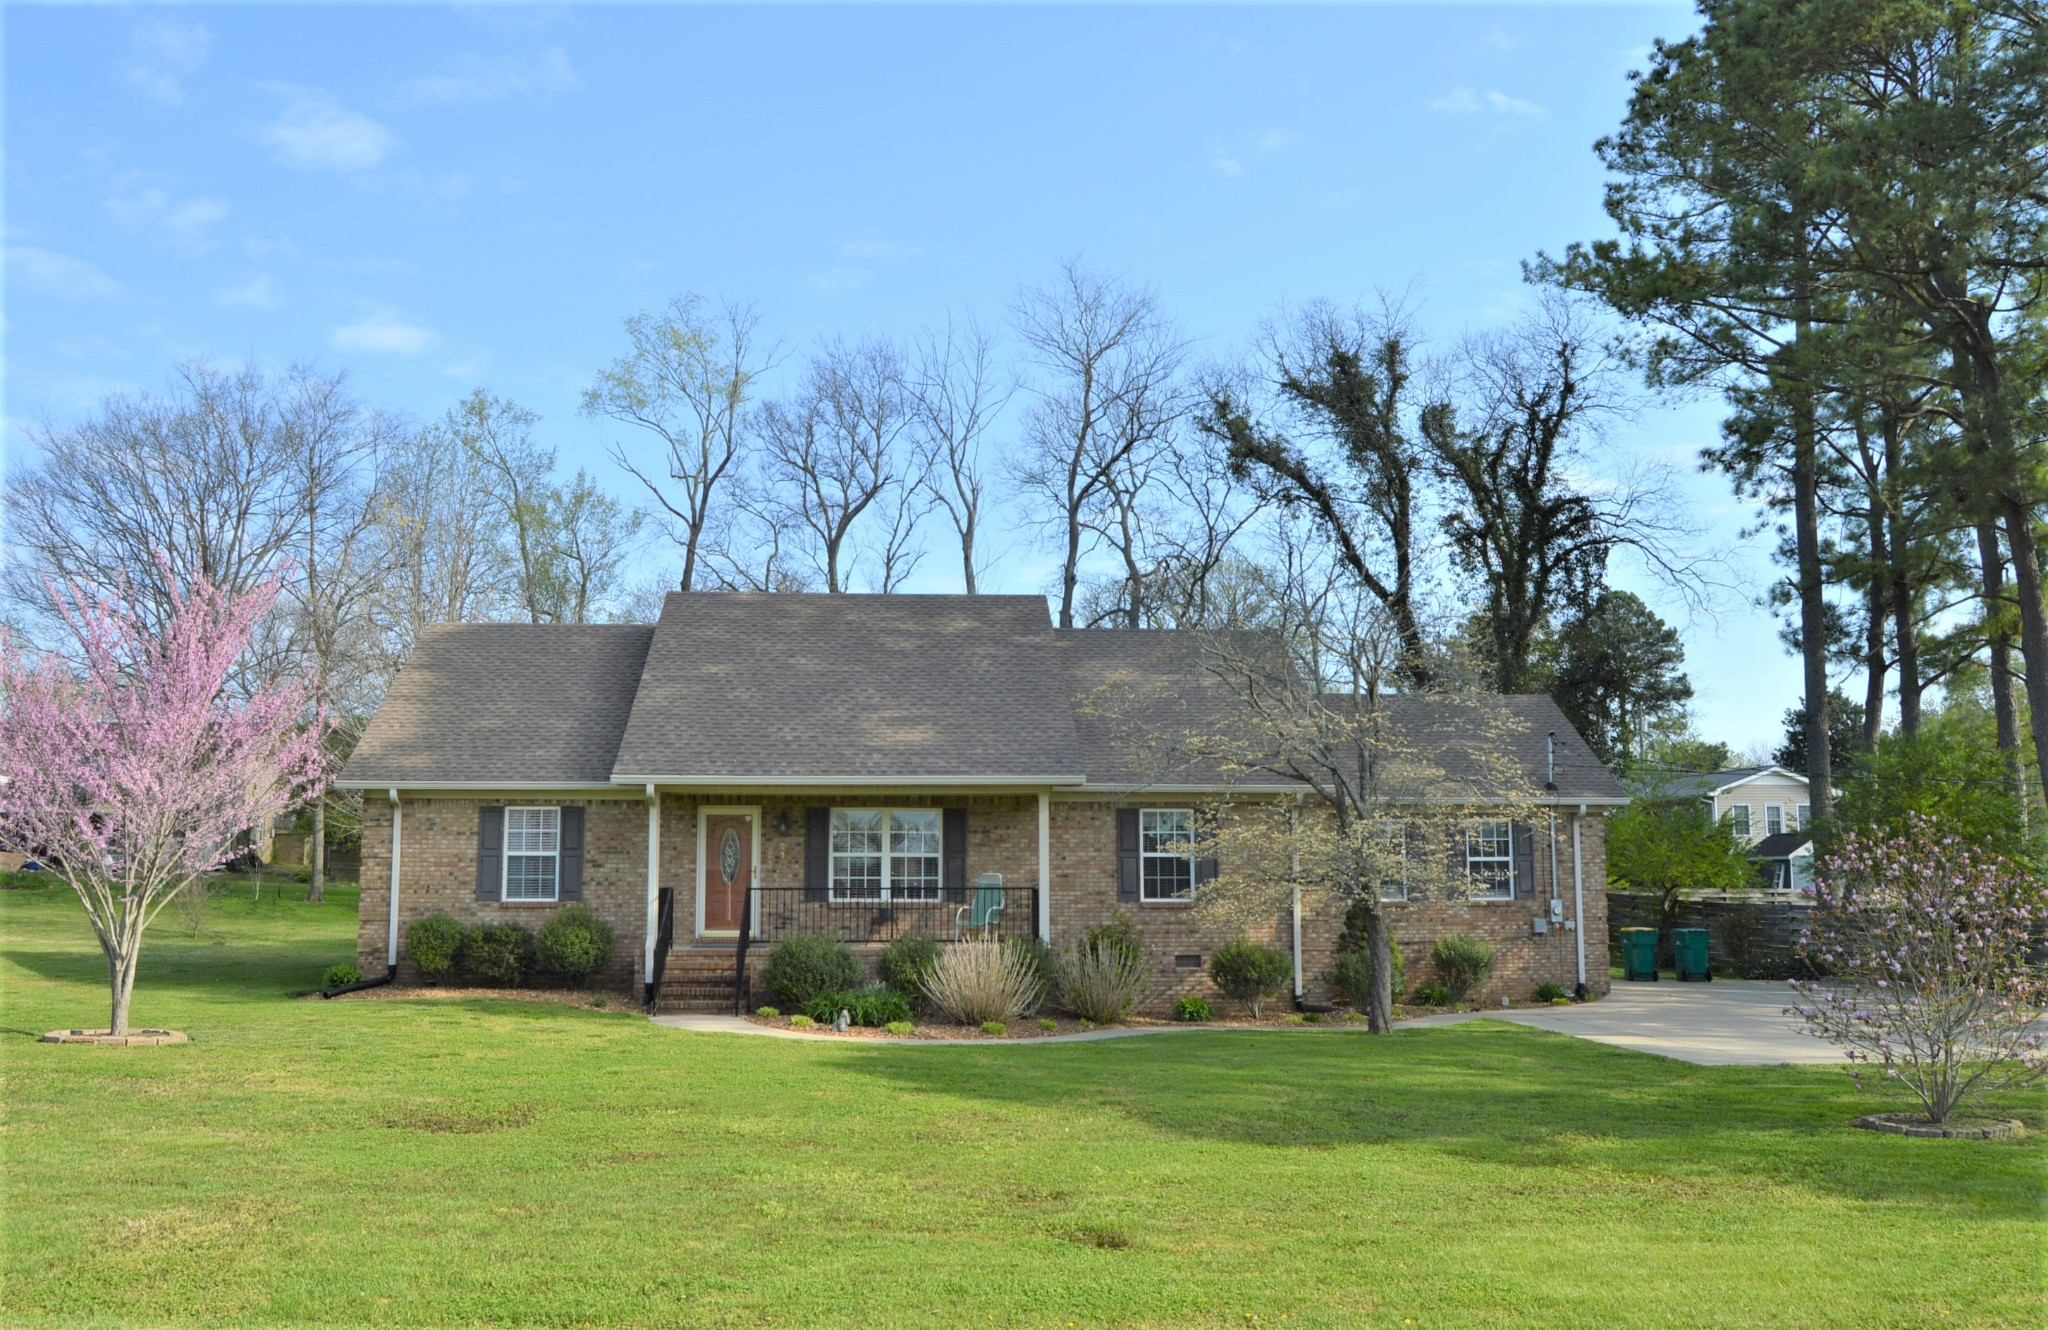 950 Galloway St Property Photo - Lewisburg, TN real estate listing